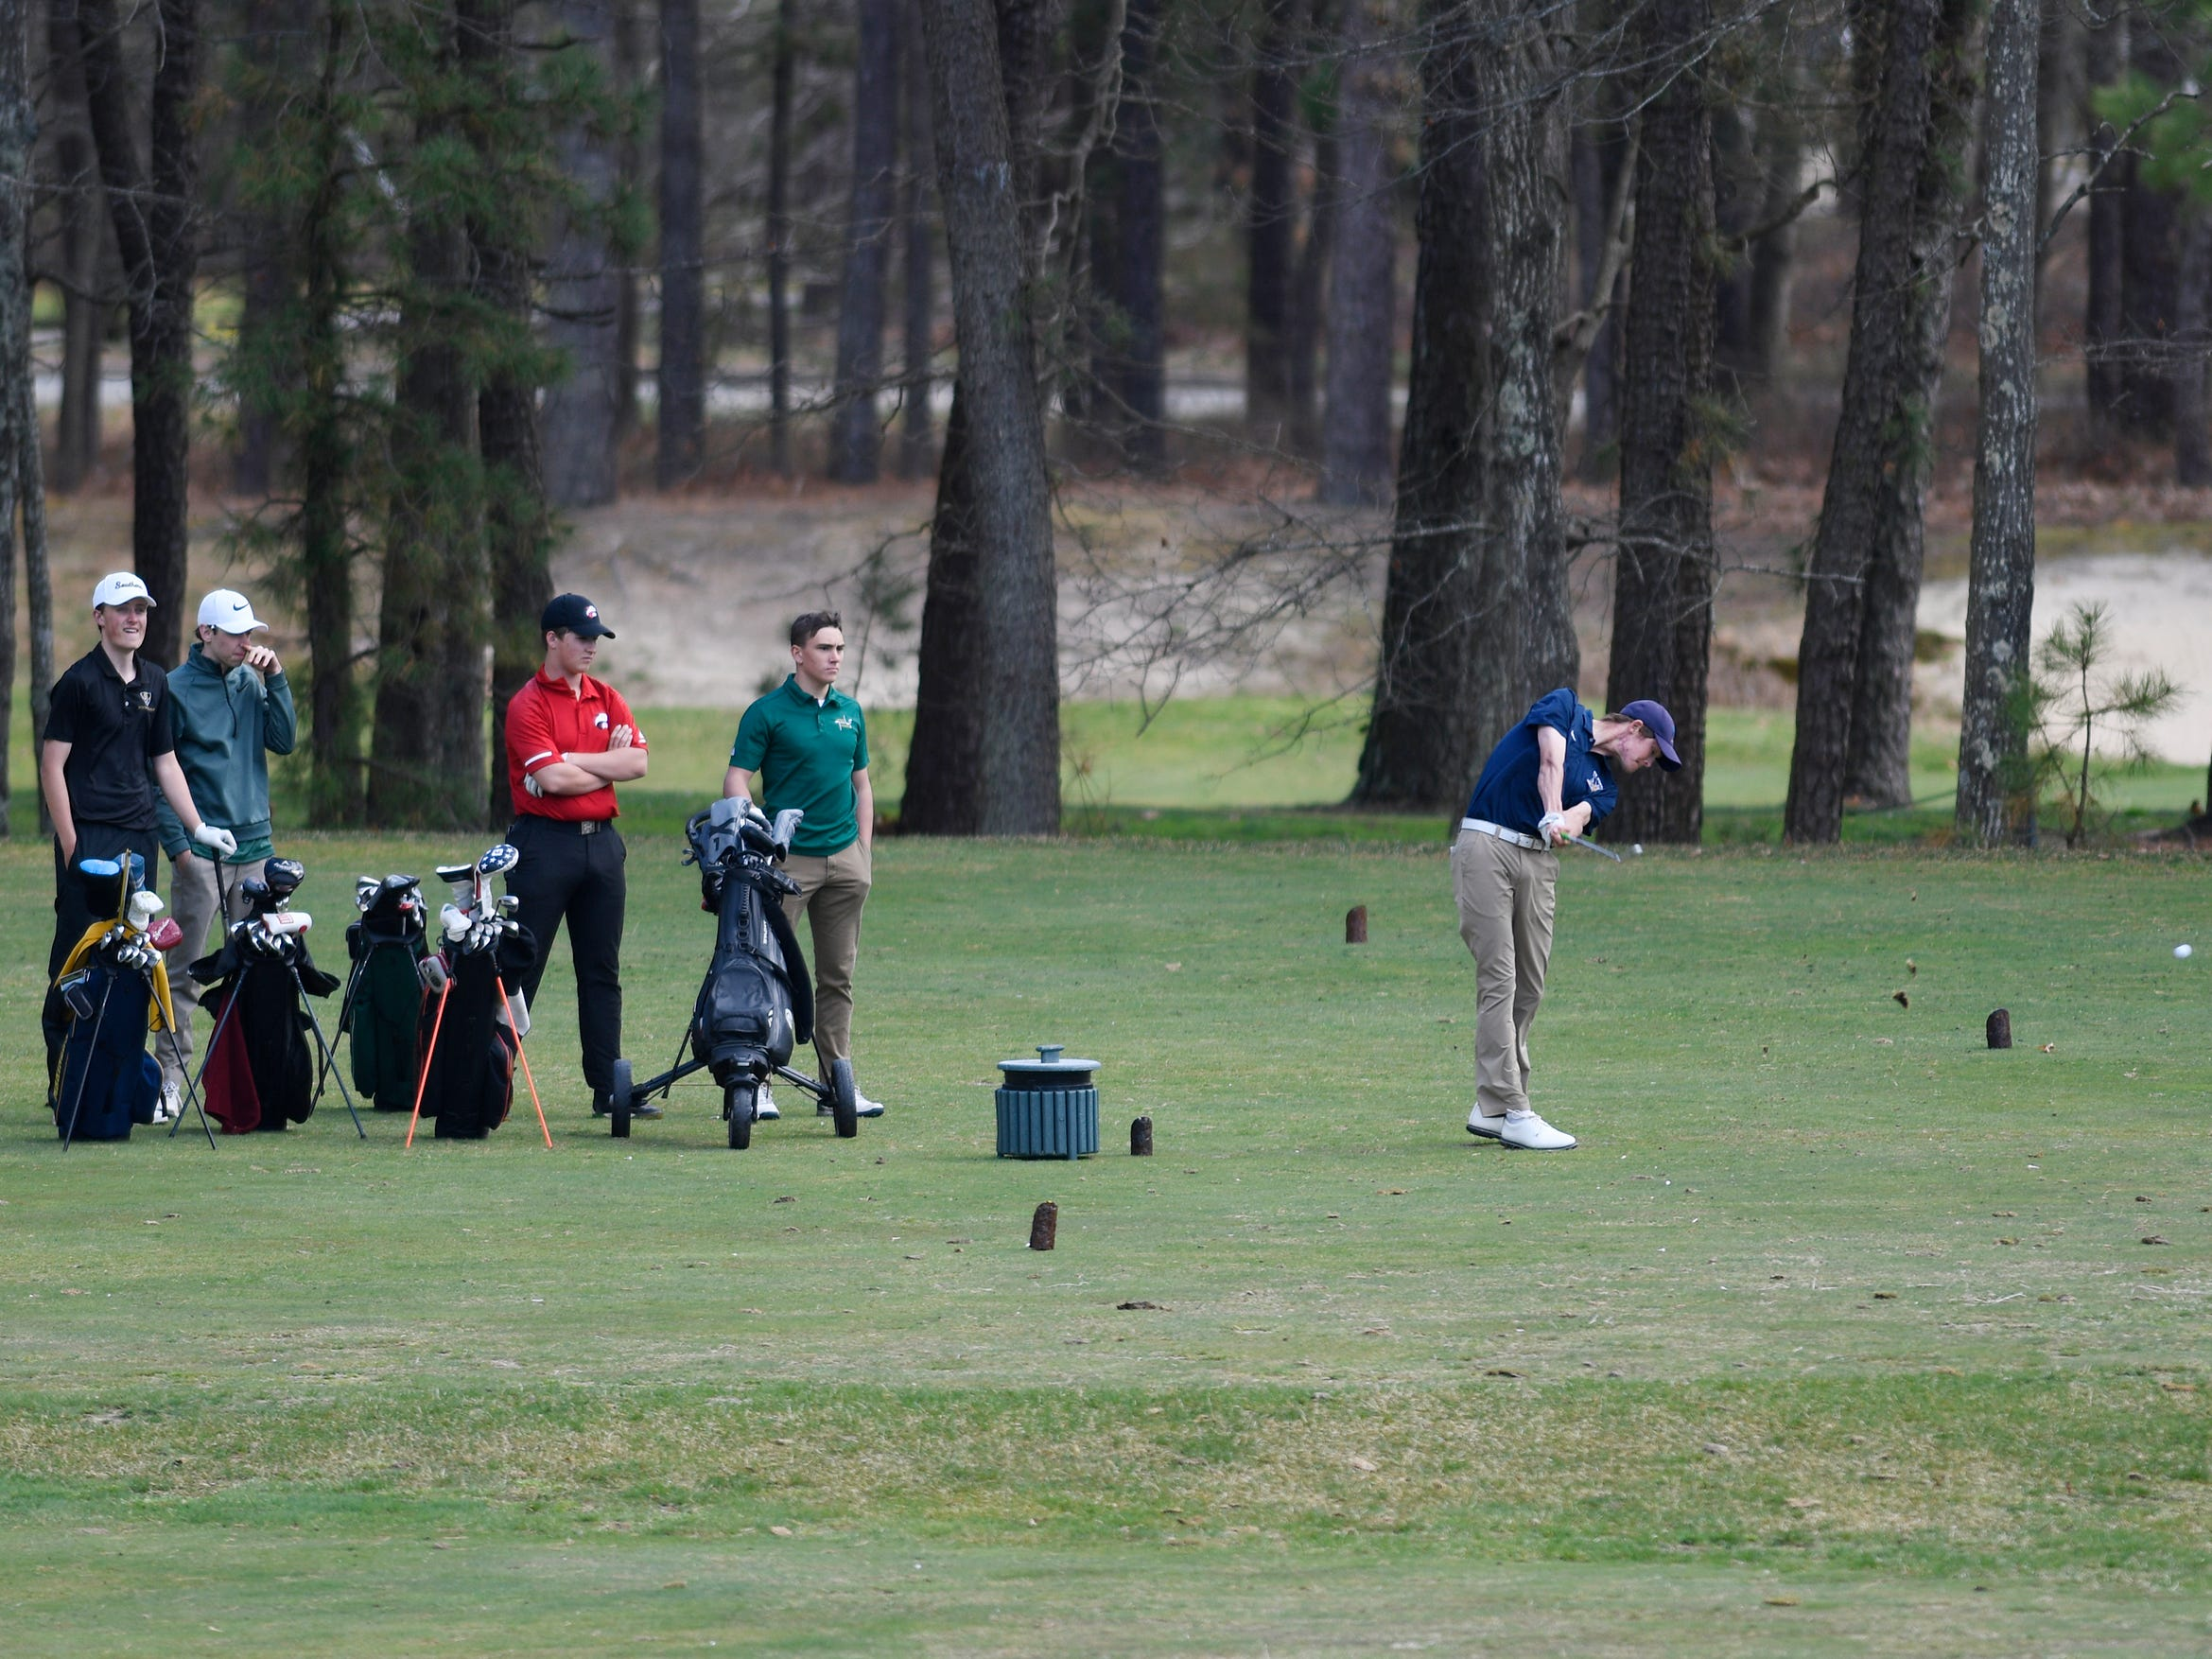 Scenes from the Ocean County Tournament at Sea Oaks Country Club in Little Egg Harbor on Monday, April 15, 2019.